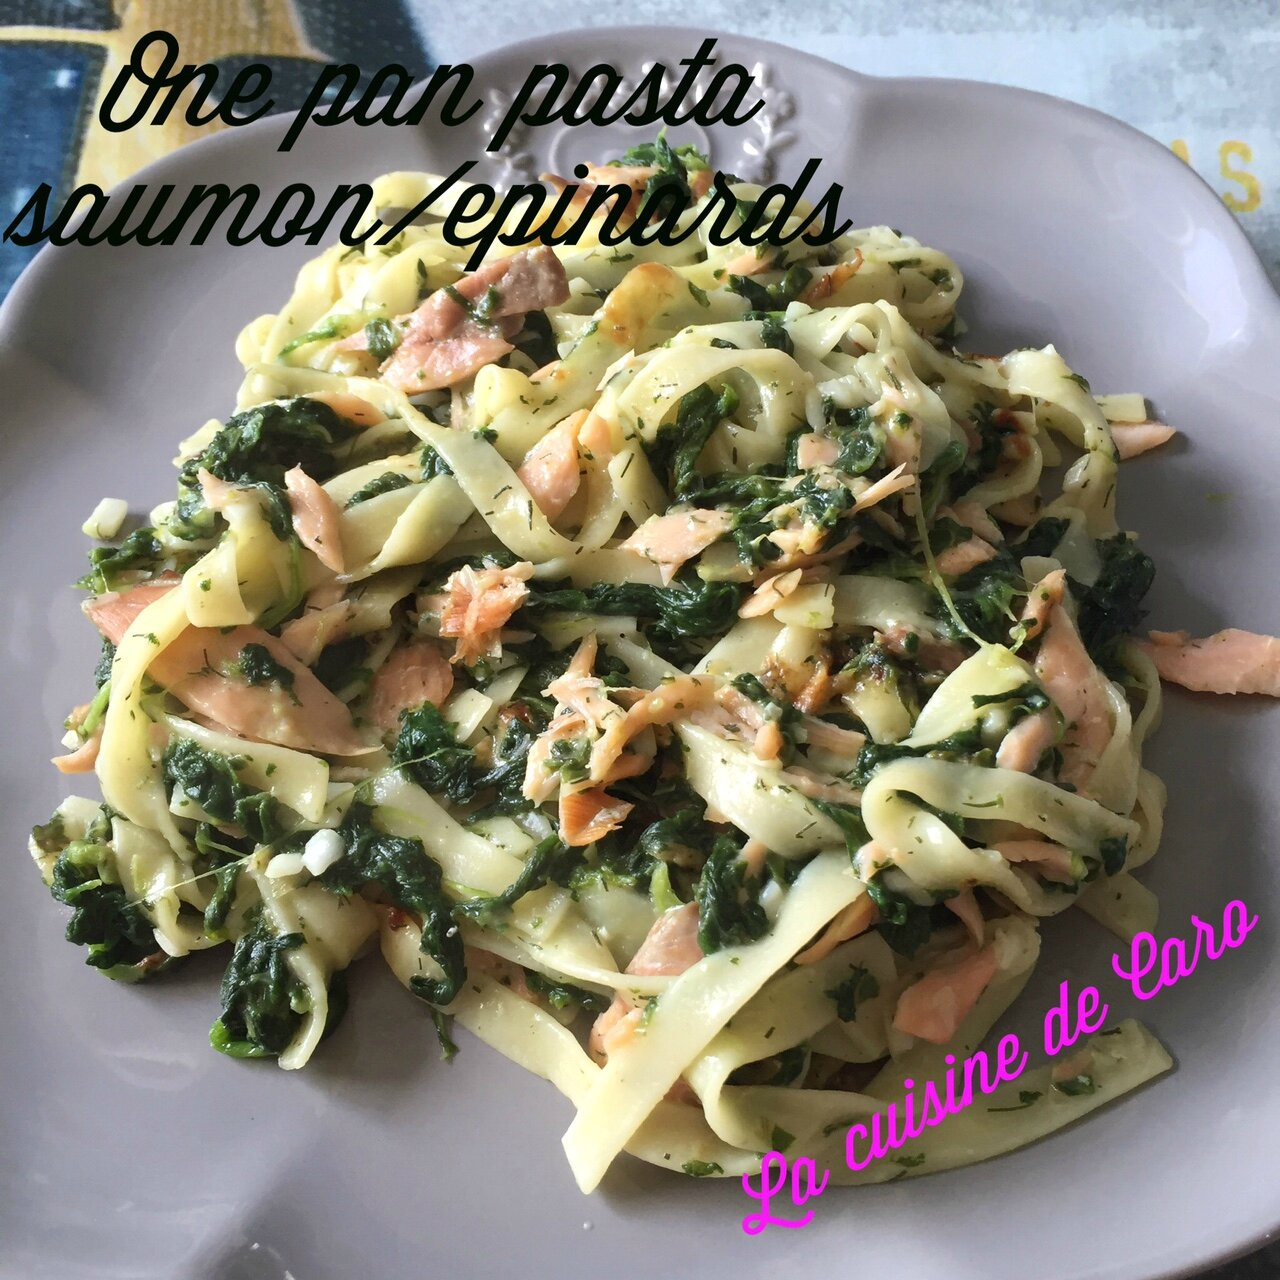 One pan pasta saumon/épinards